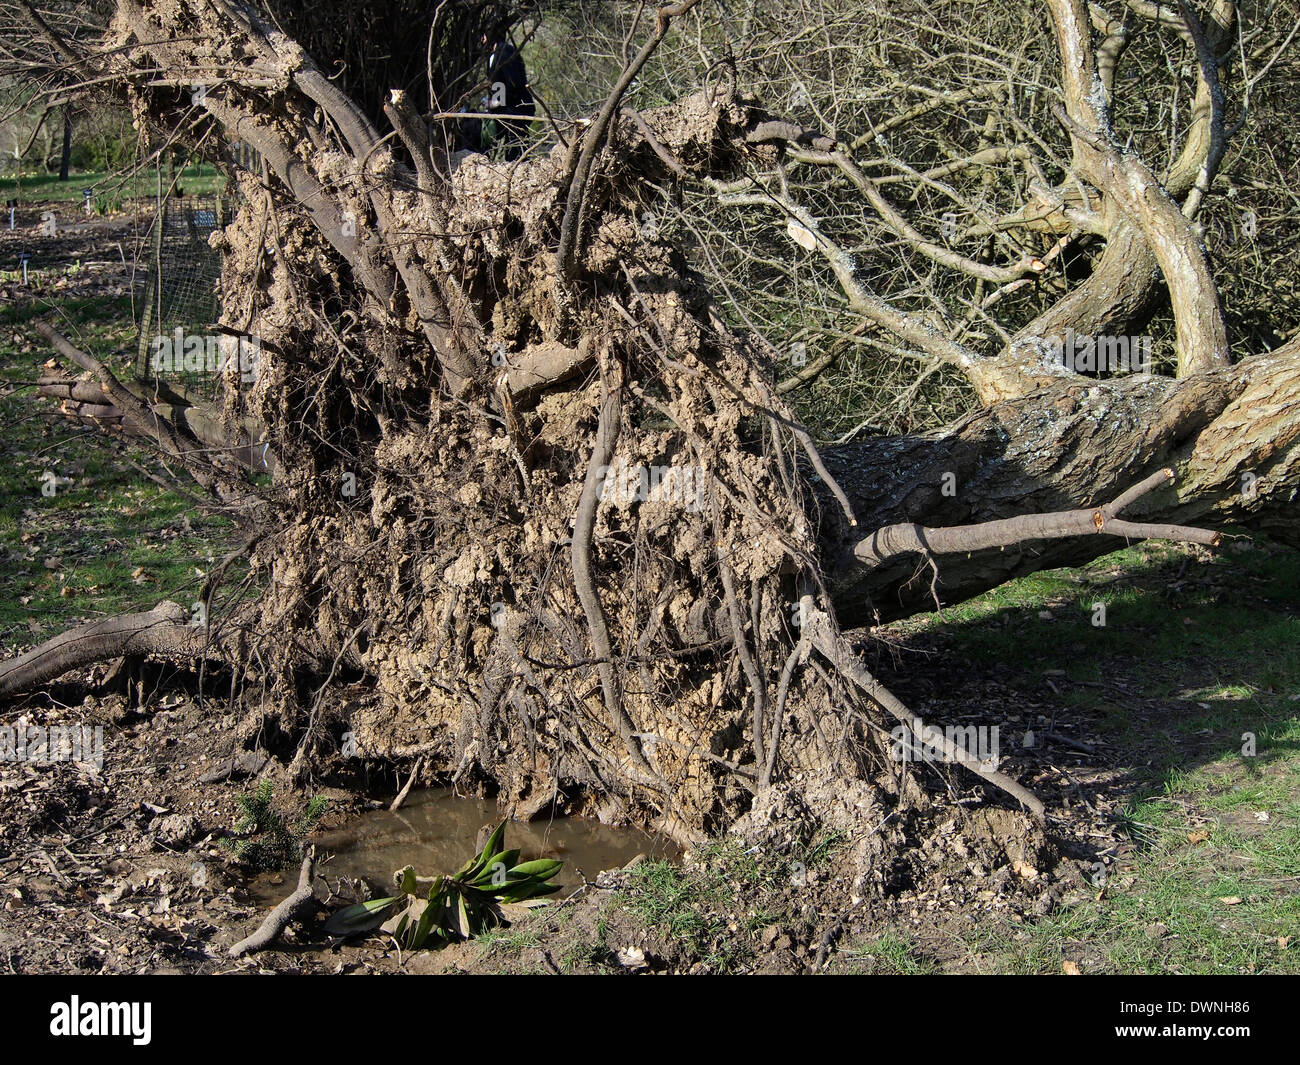 A fallen tree toppled by winter storms in early 2014 at Hillier Gardens showing the shallow root system, Stock Photo